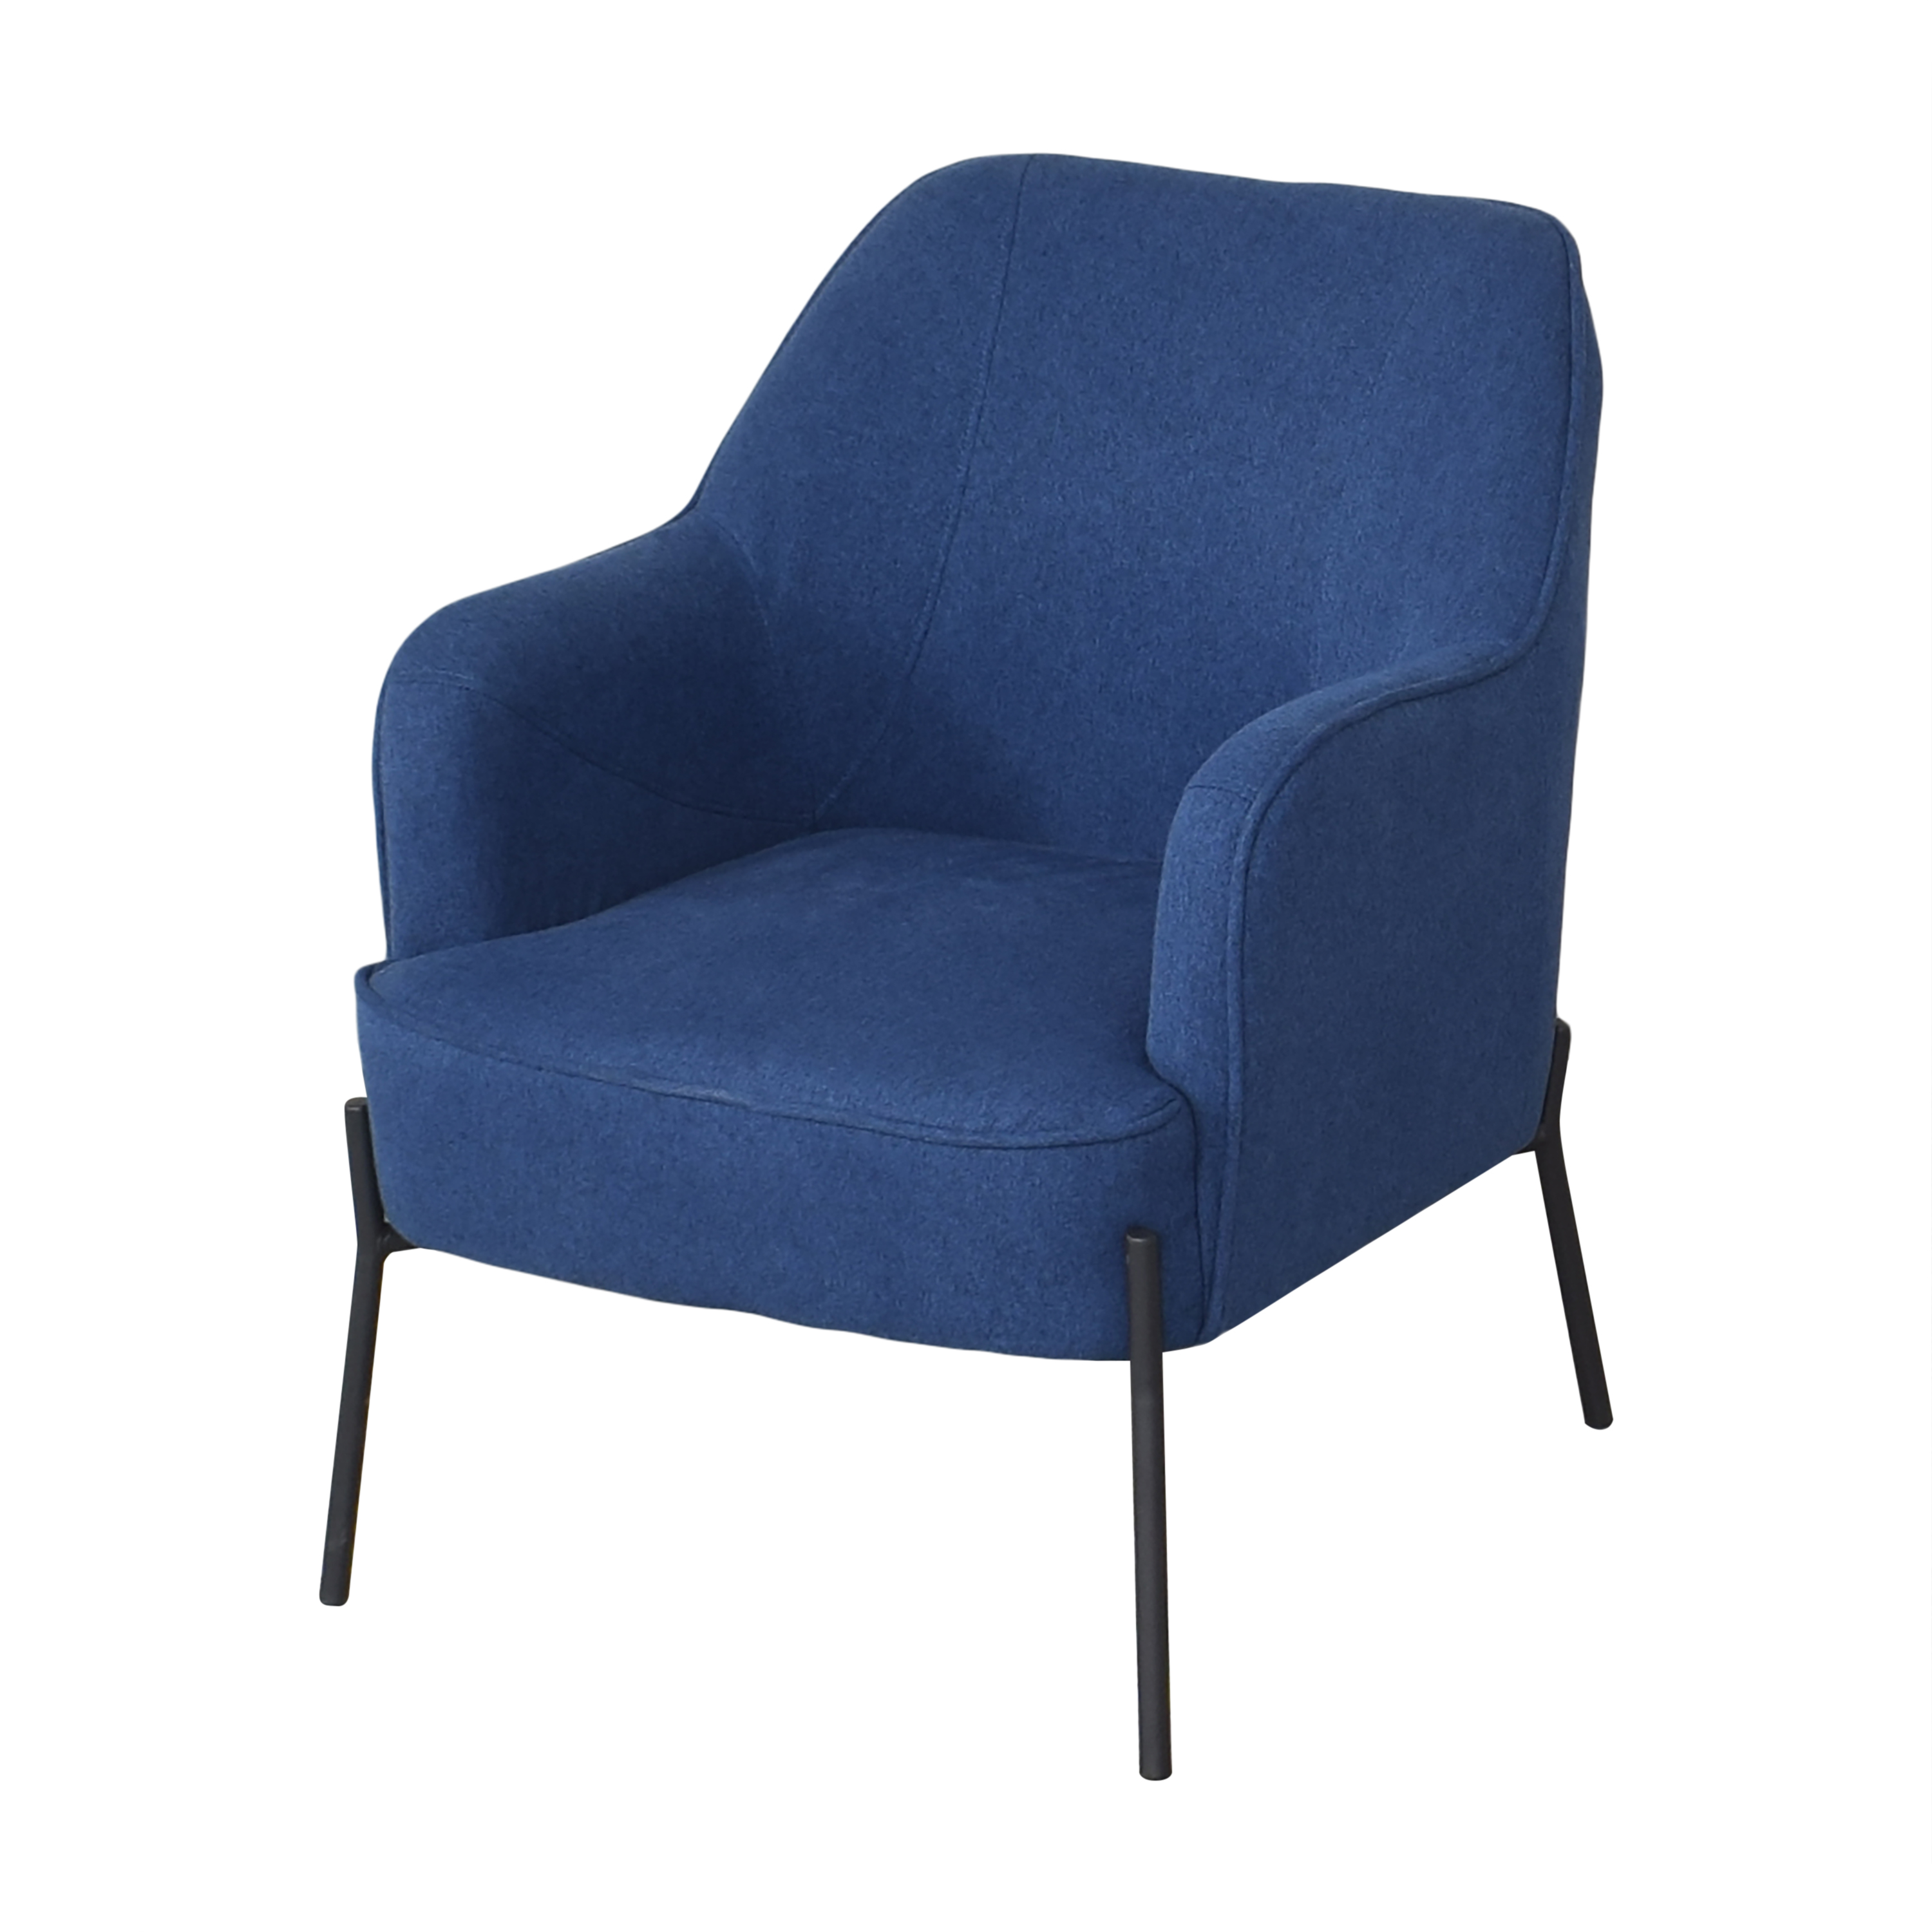 Modern Accent Chair for sale